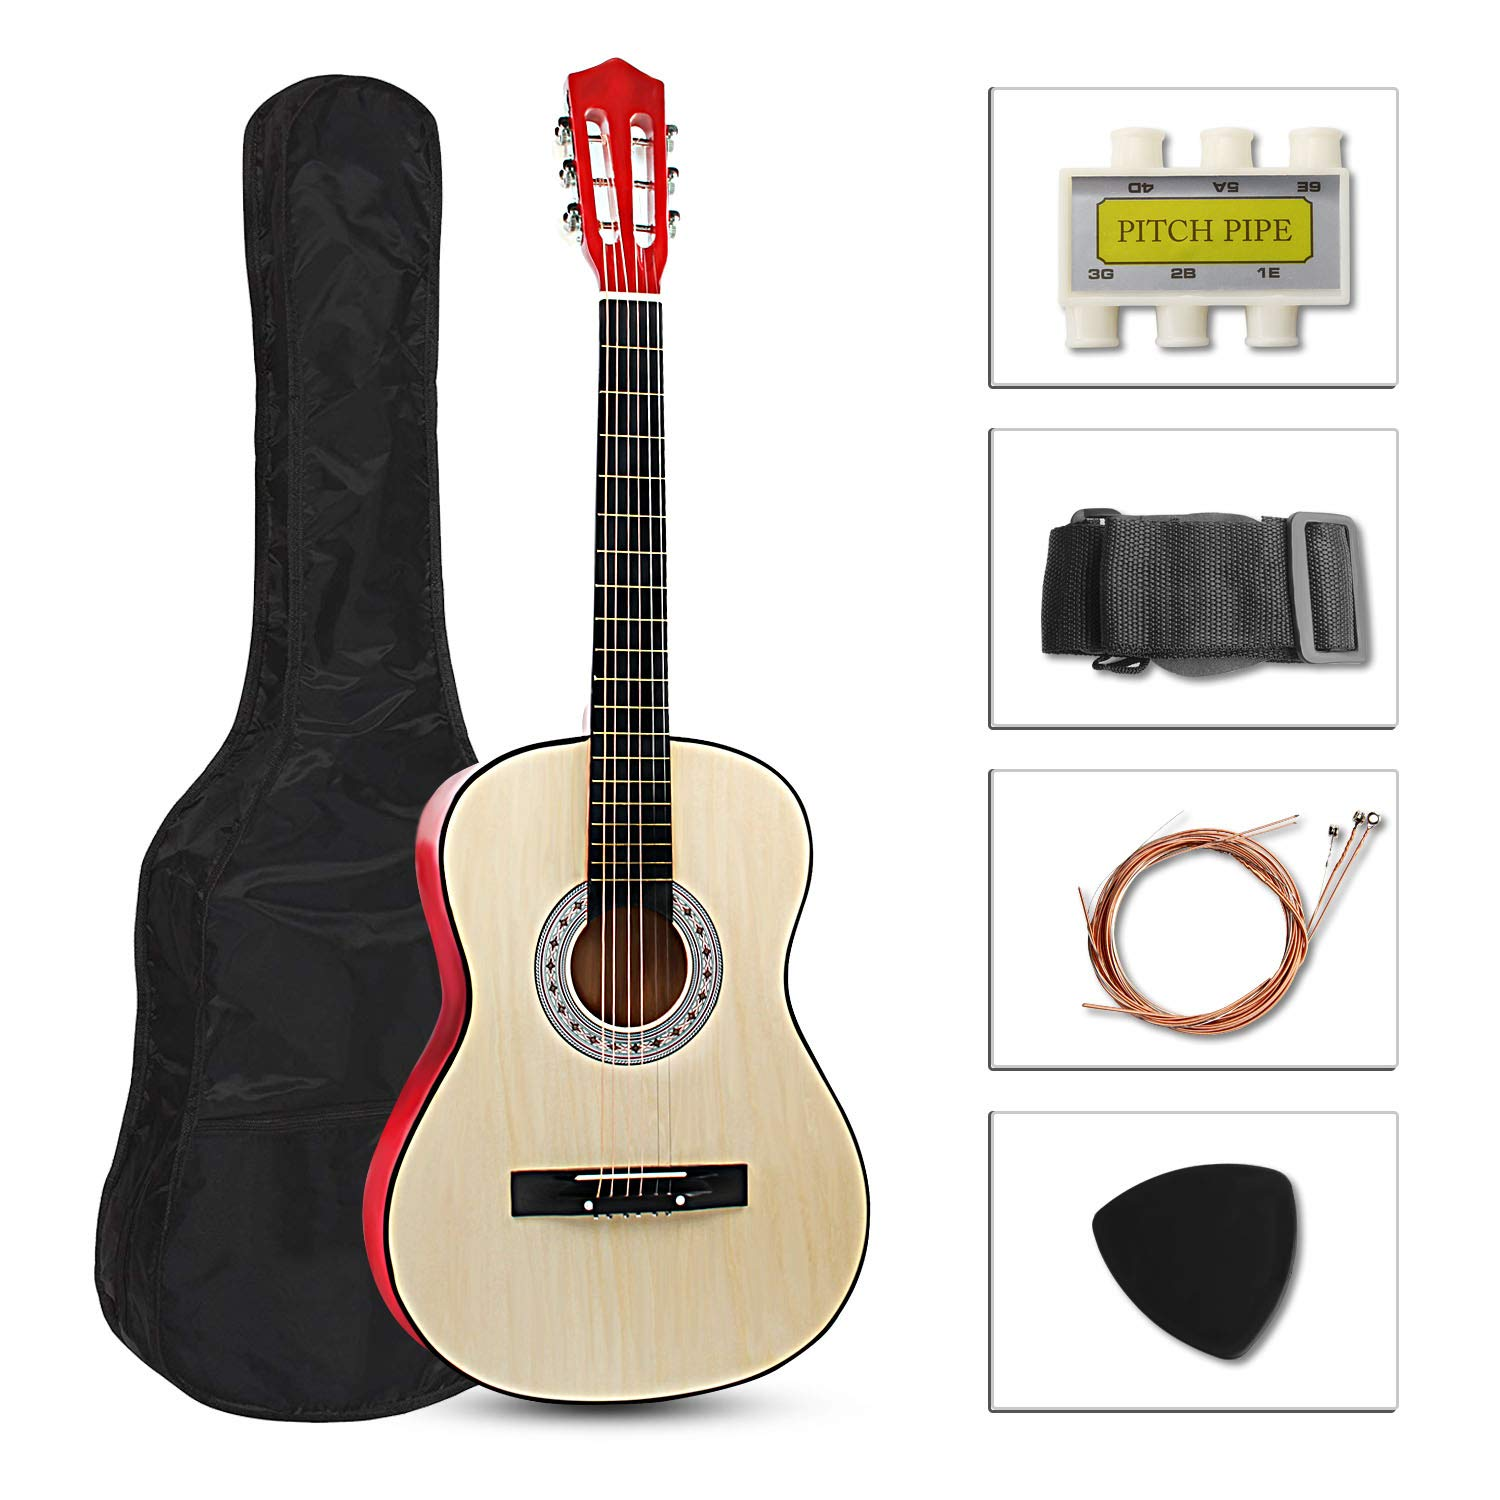 ARyee 38'' Acoustic Cutaway Guitar Beginner Kit with Gig bag, Strap, Tuner and Pick (Red) by ARyee